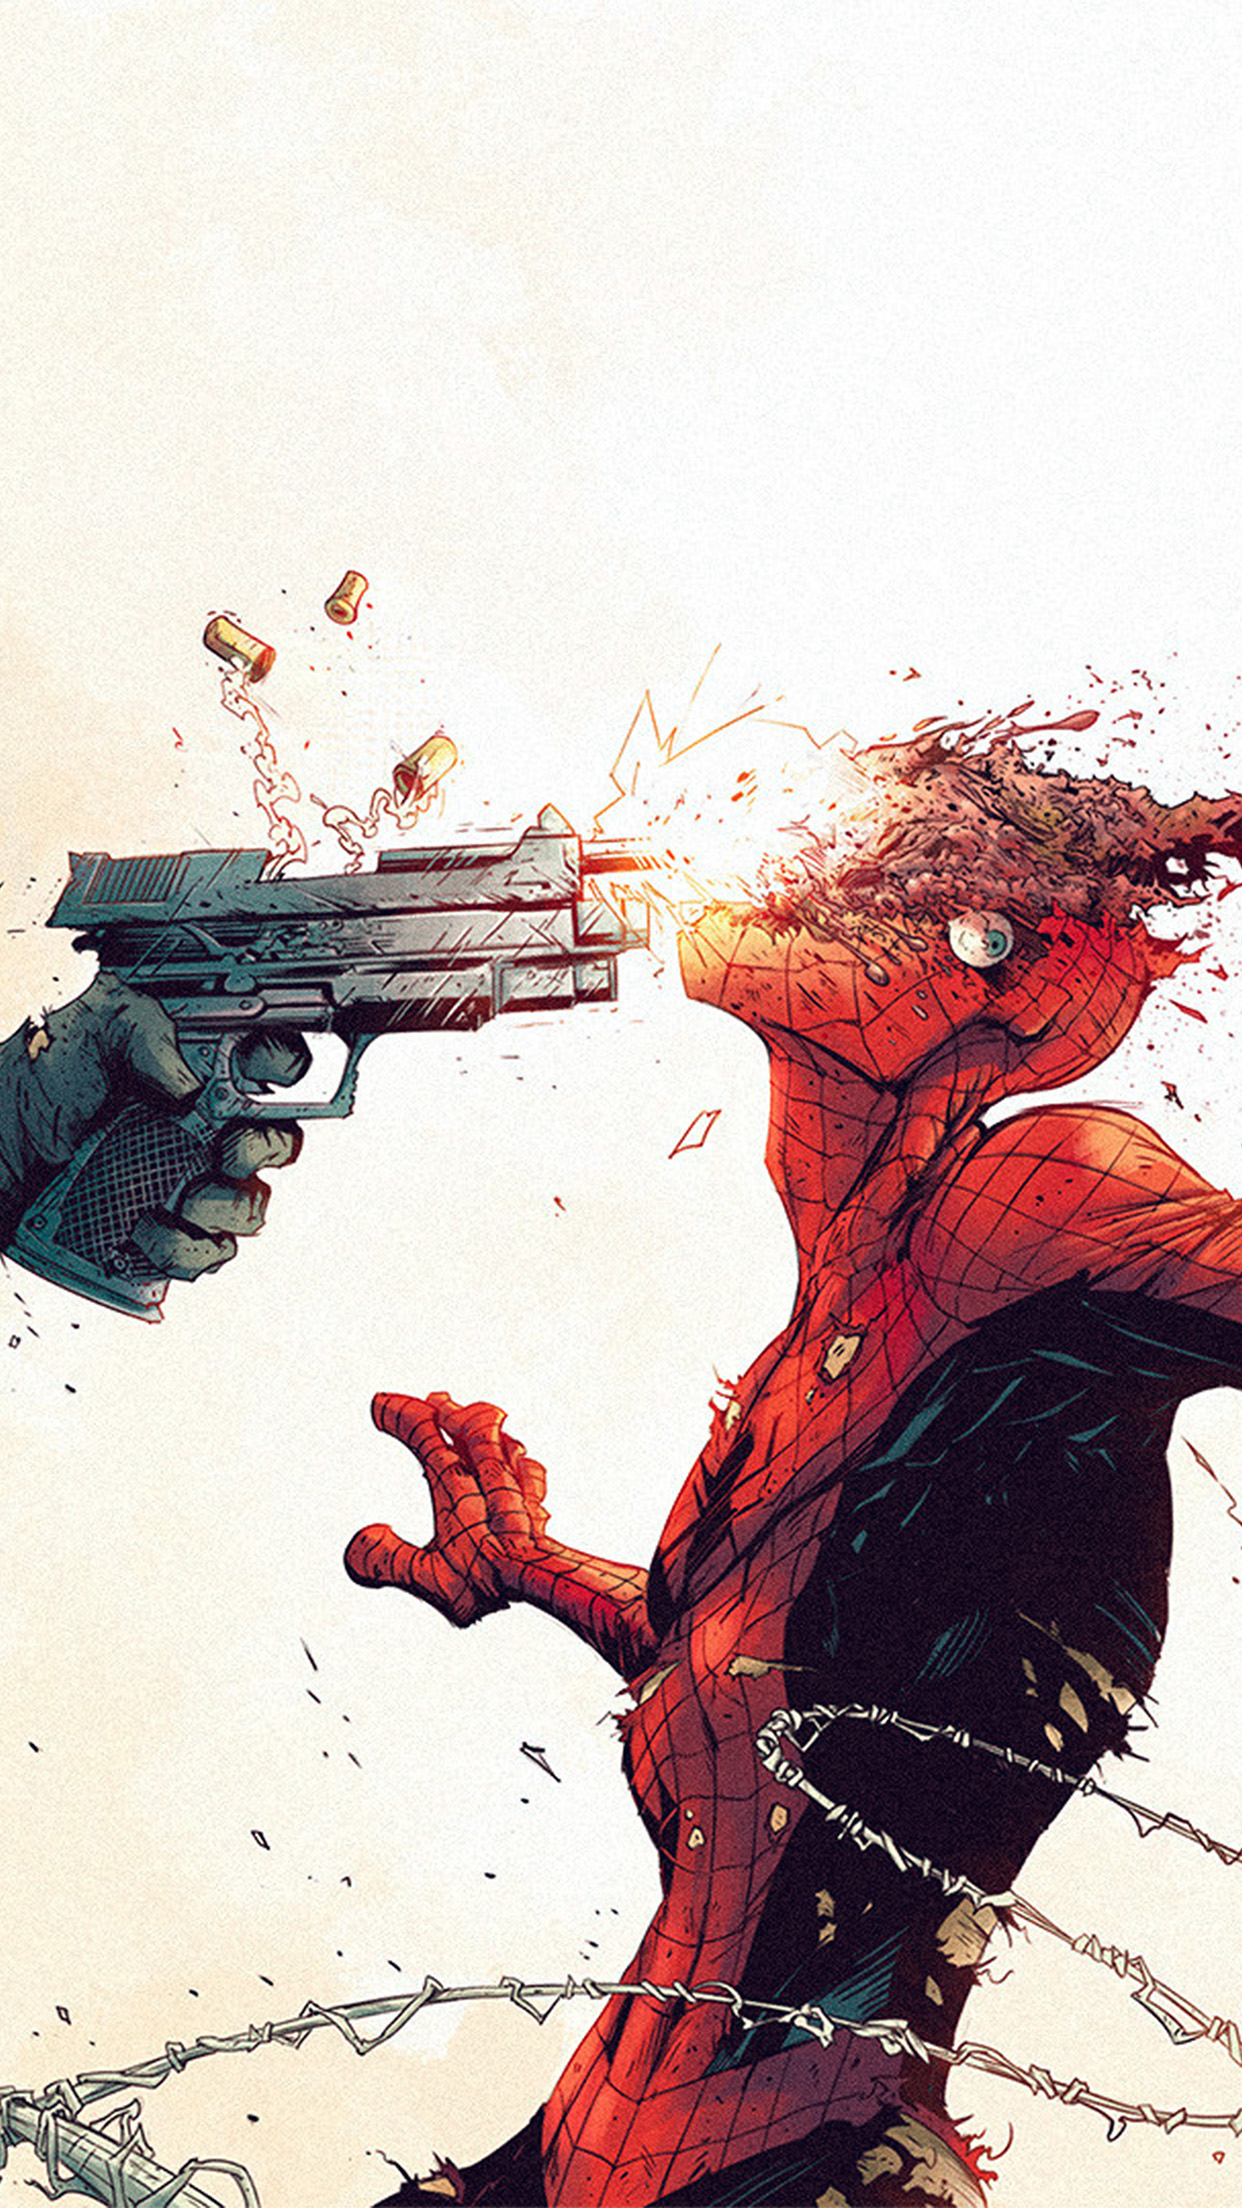 Iphone wallpaper aw51 punisher spiderman - Classic art wallpaper iphone 5 ...